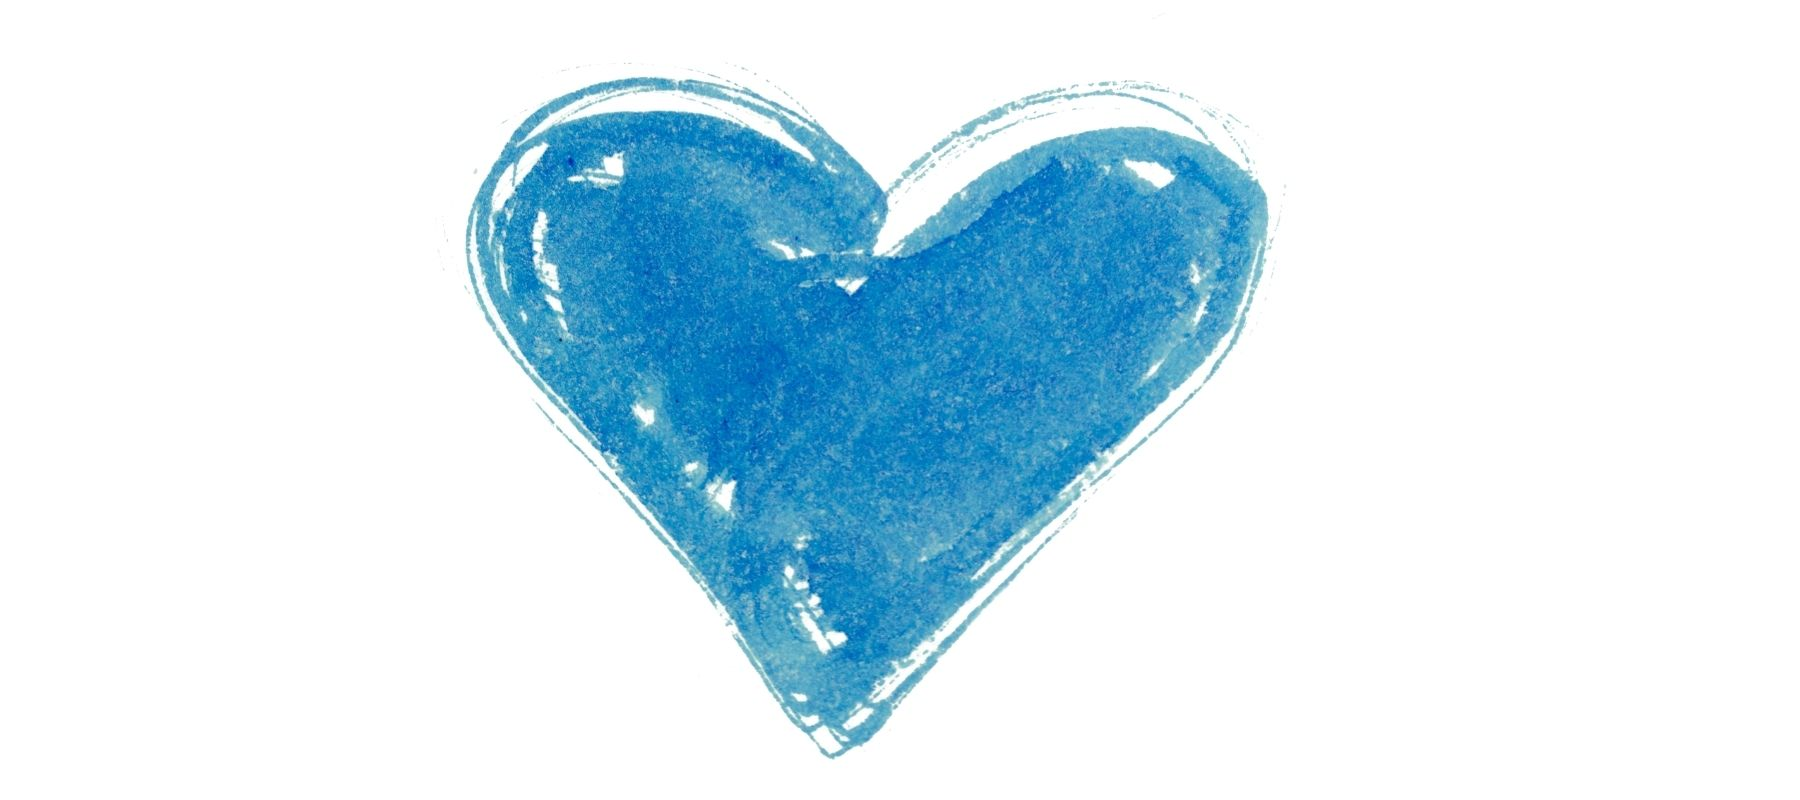 Drawn blue heart for Valentine's Day